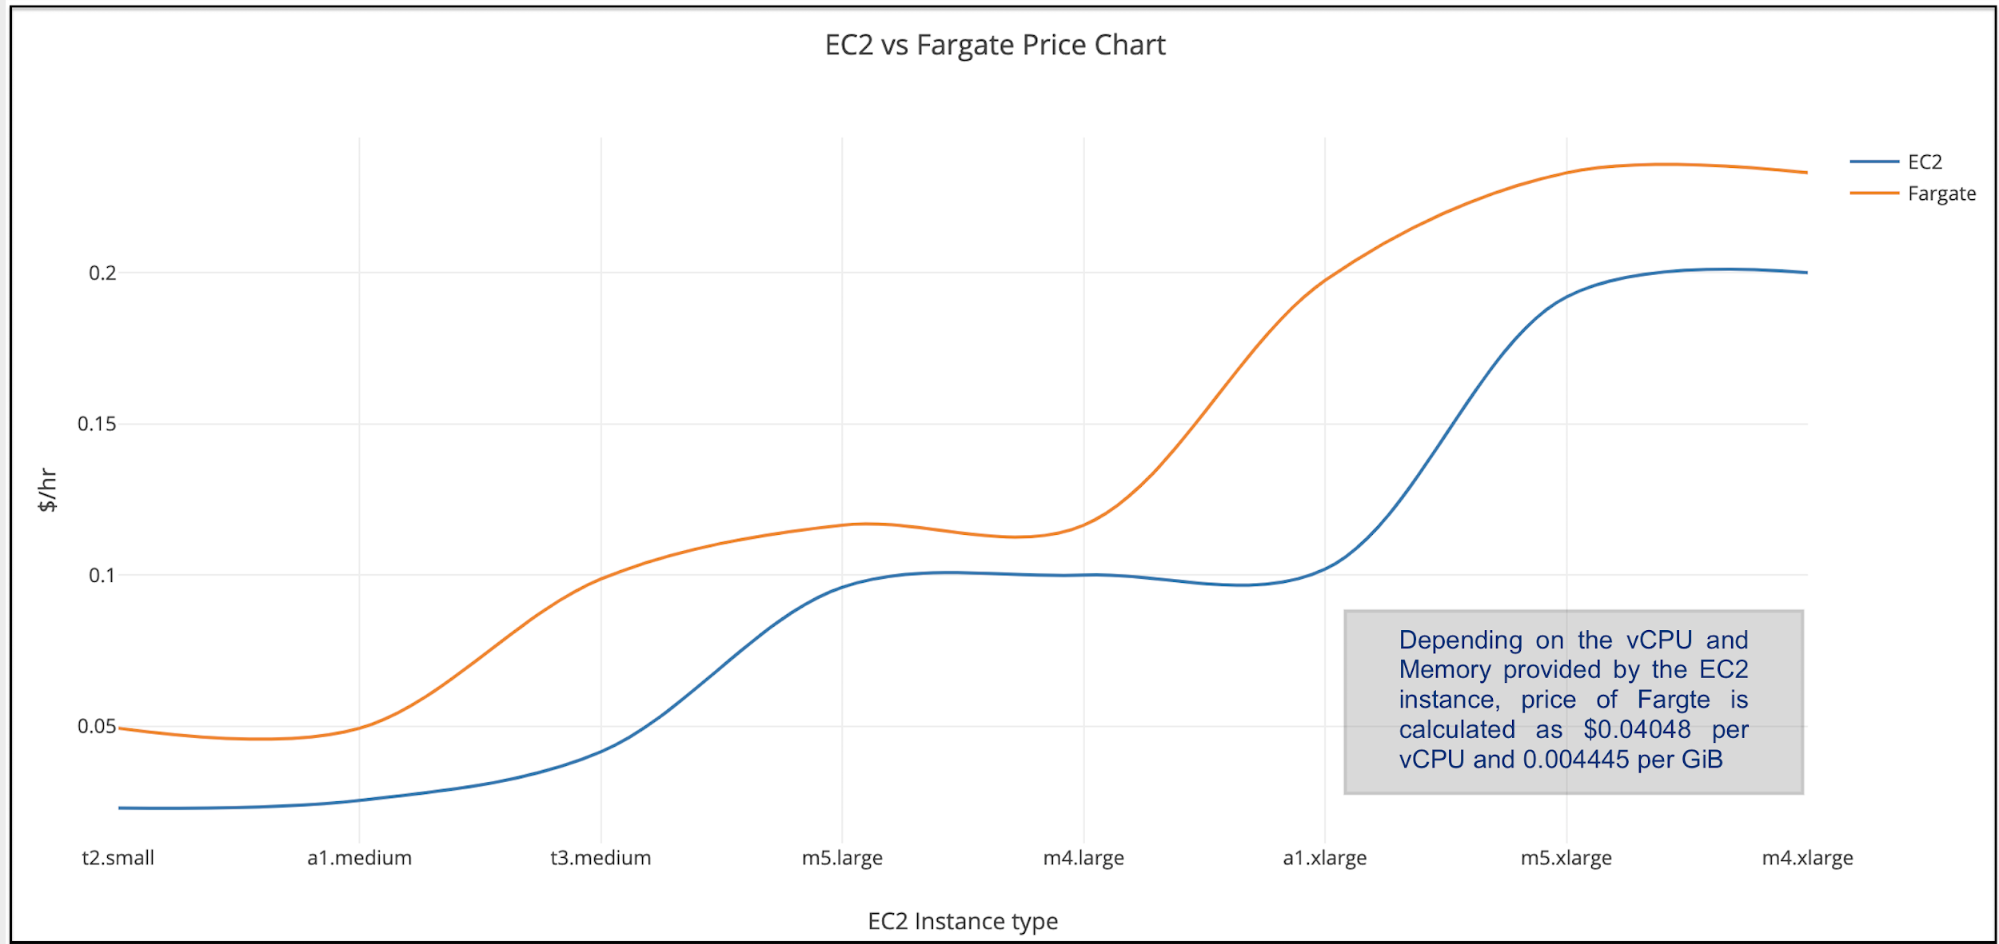 EC2 vs Fargate Price Chart